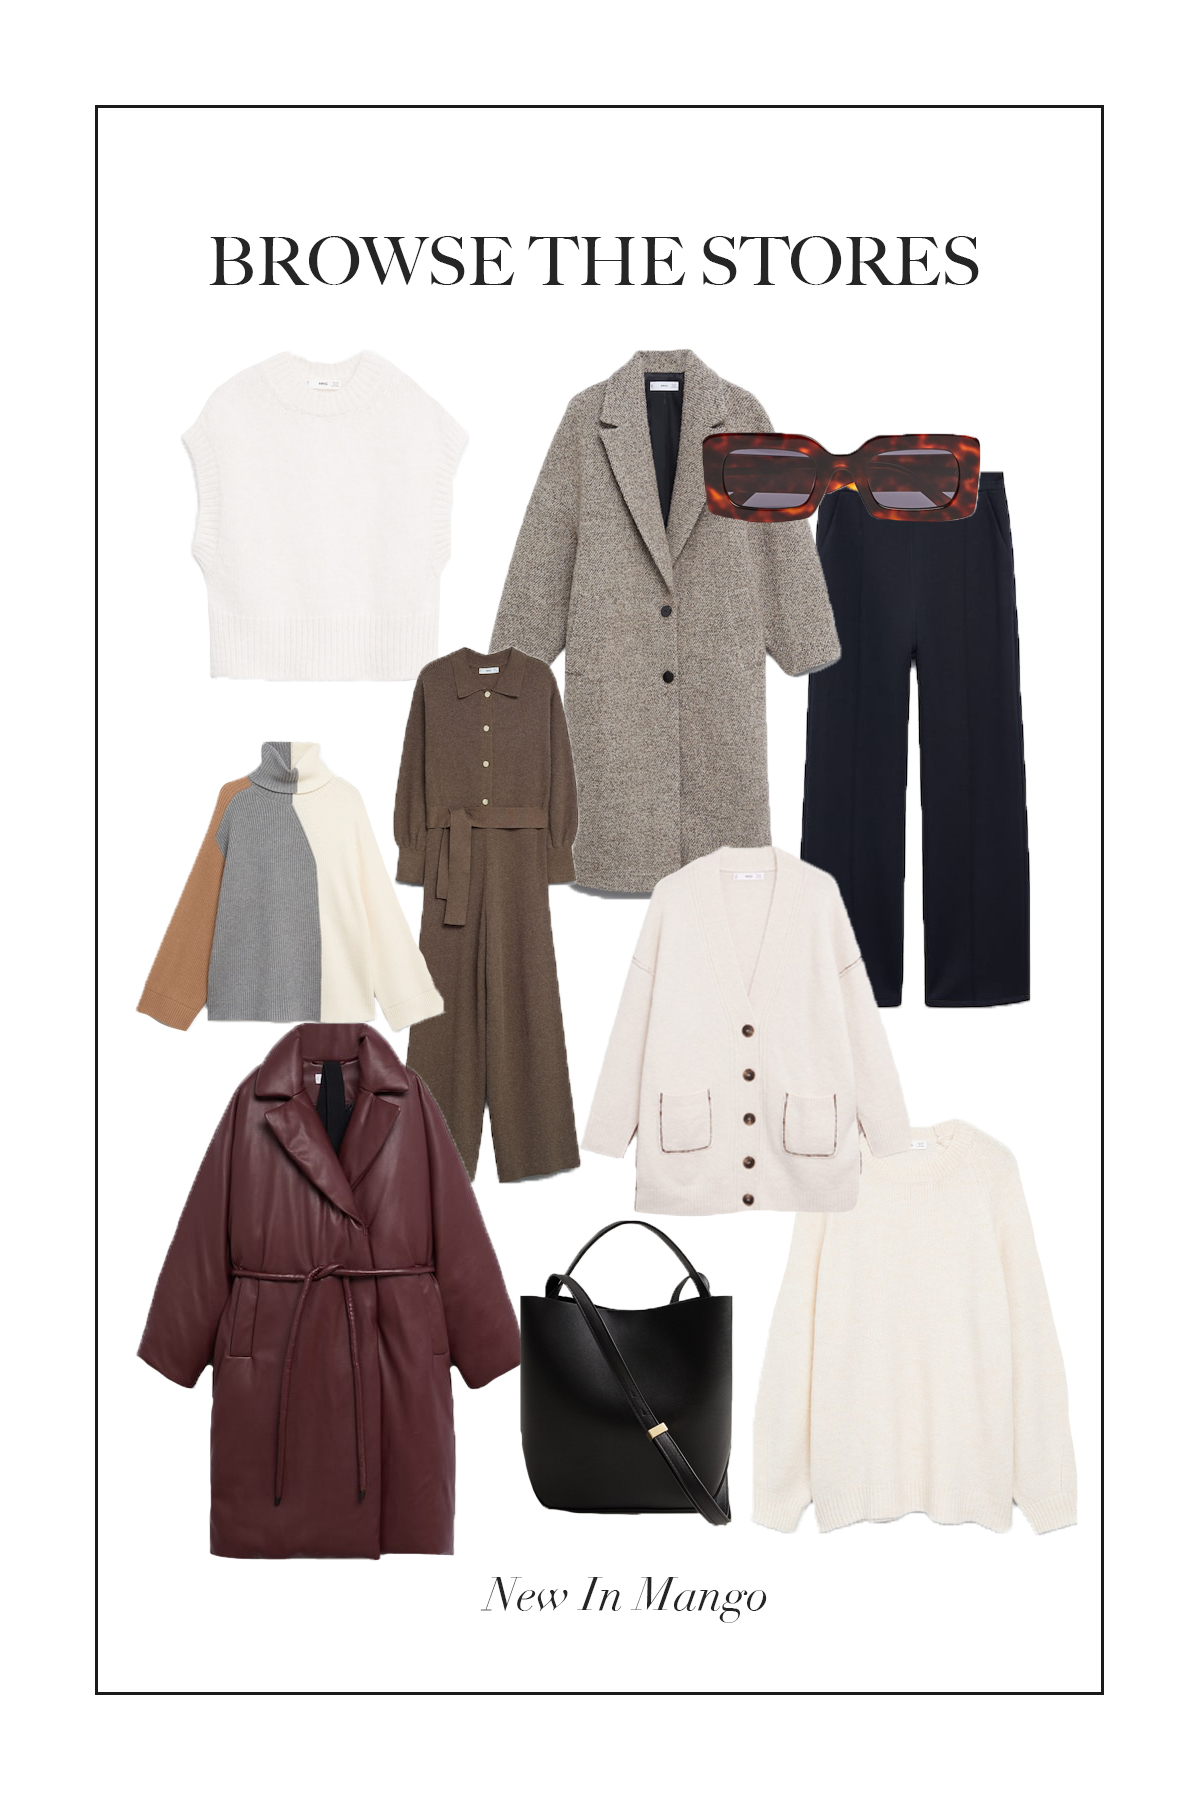 Mango has some gorgeous pieces new in right now so here are some you might need in your wardrobe...